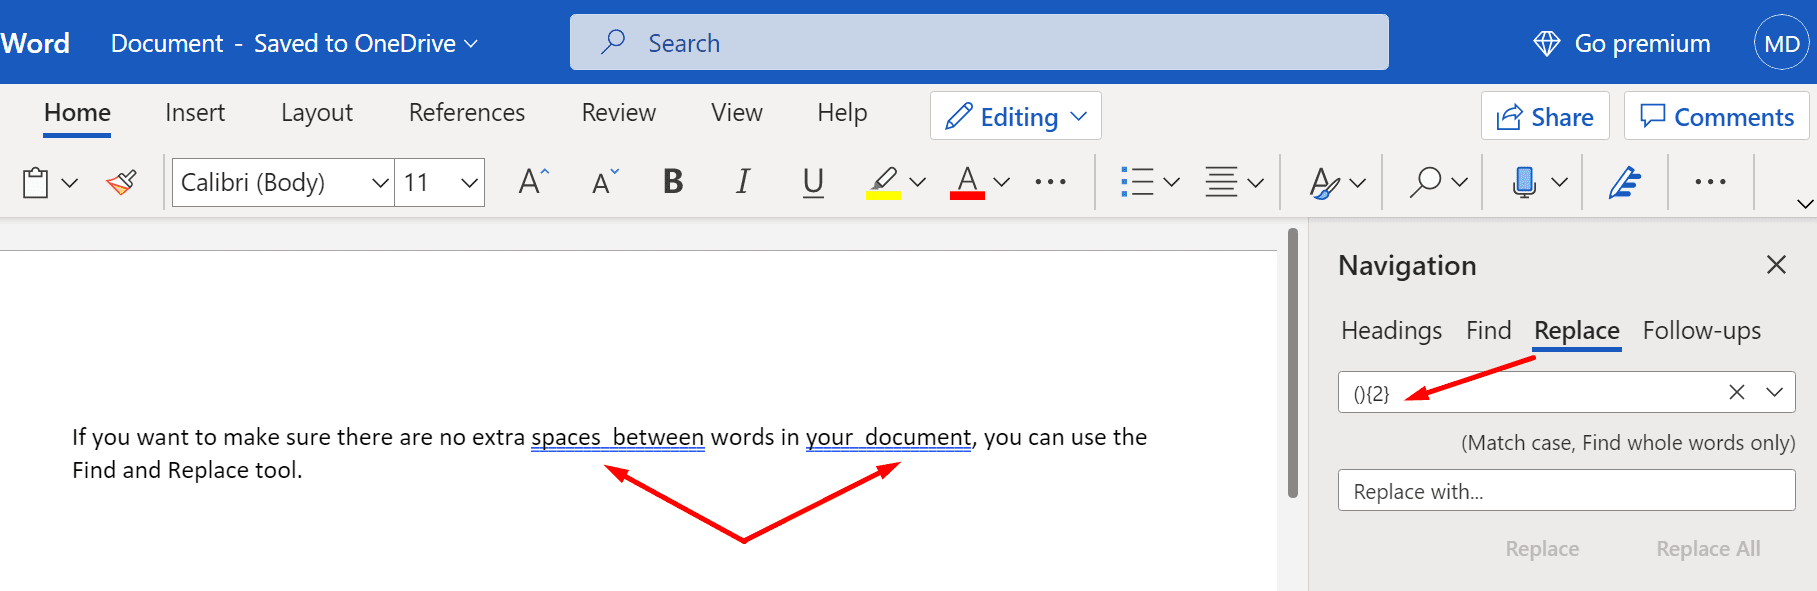 find extra spaces between words microsoft word